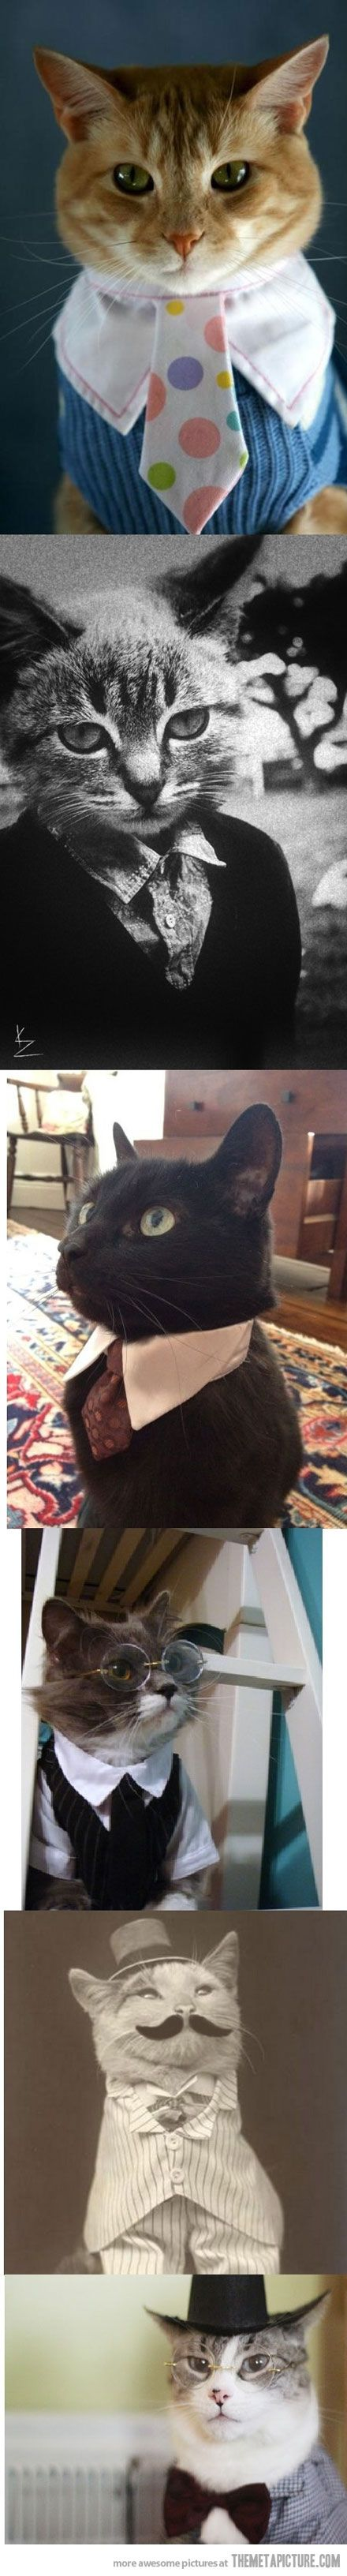 These cats are classy.